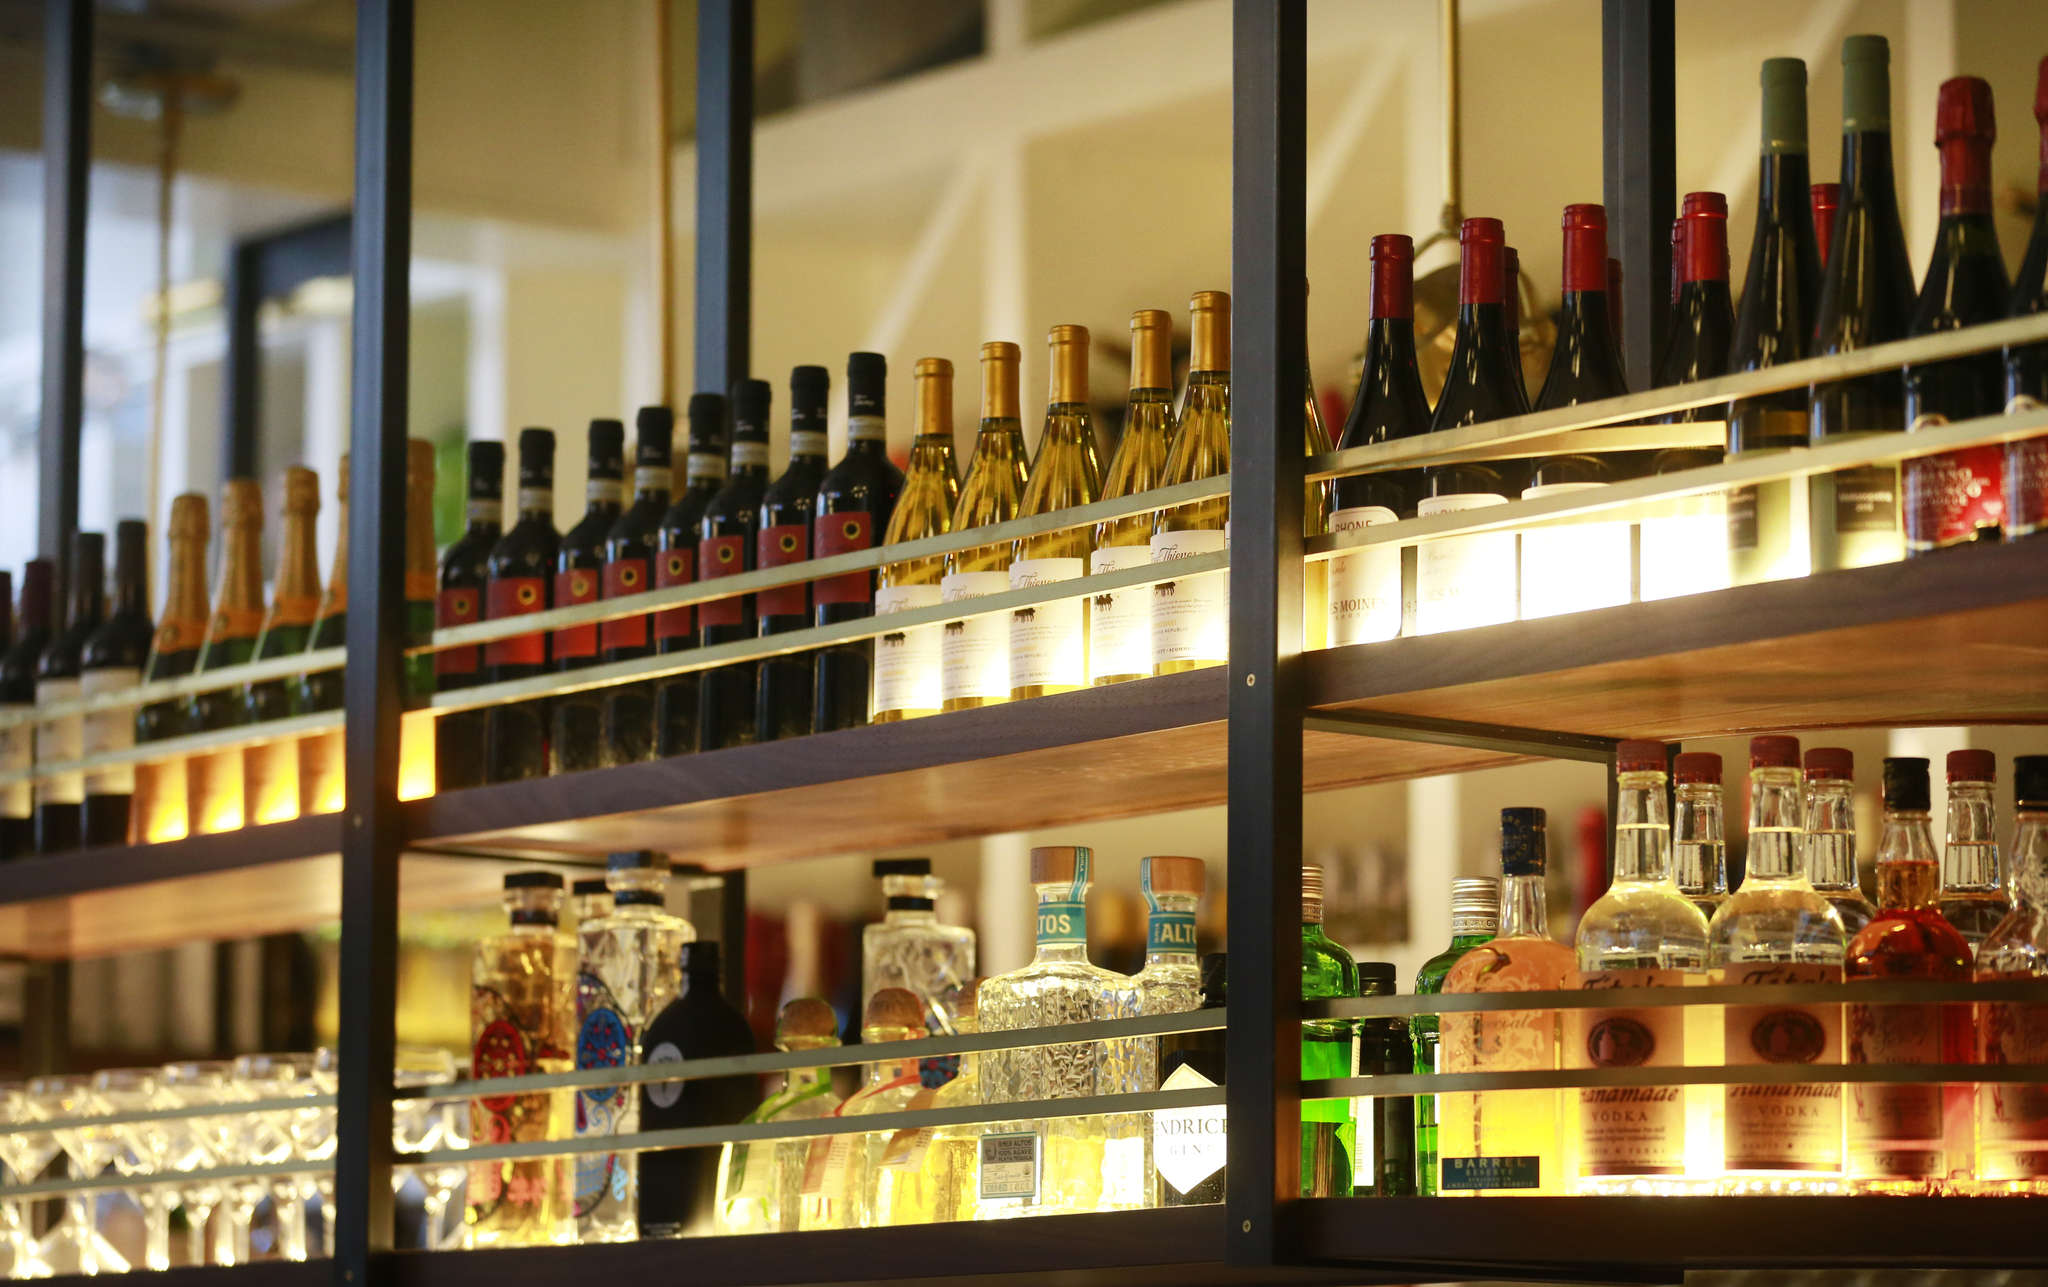 Fine wines behind glass at Tredici Enoteca. Among the restaurant´s strengths are its well-informed servers, who are able guides to the extensive wine list and menu.